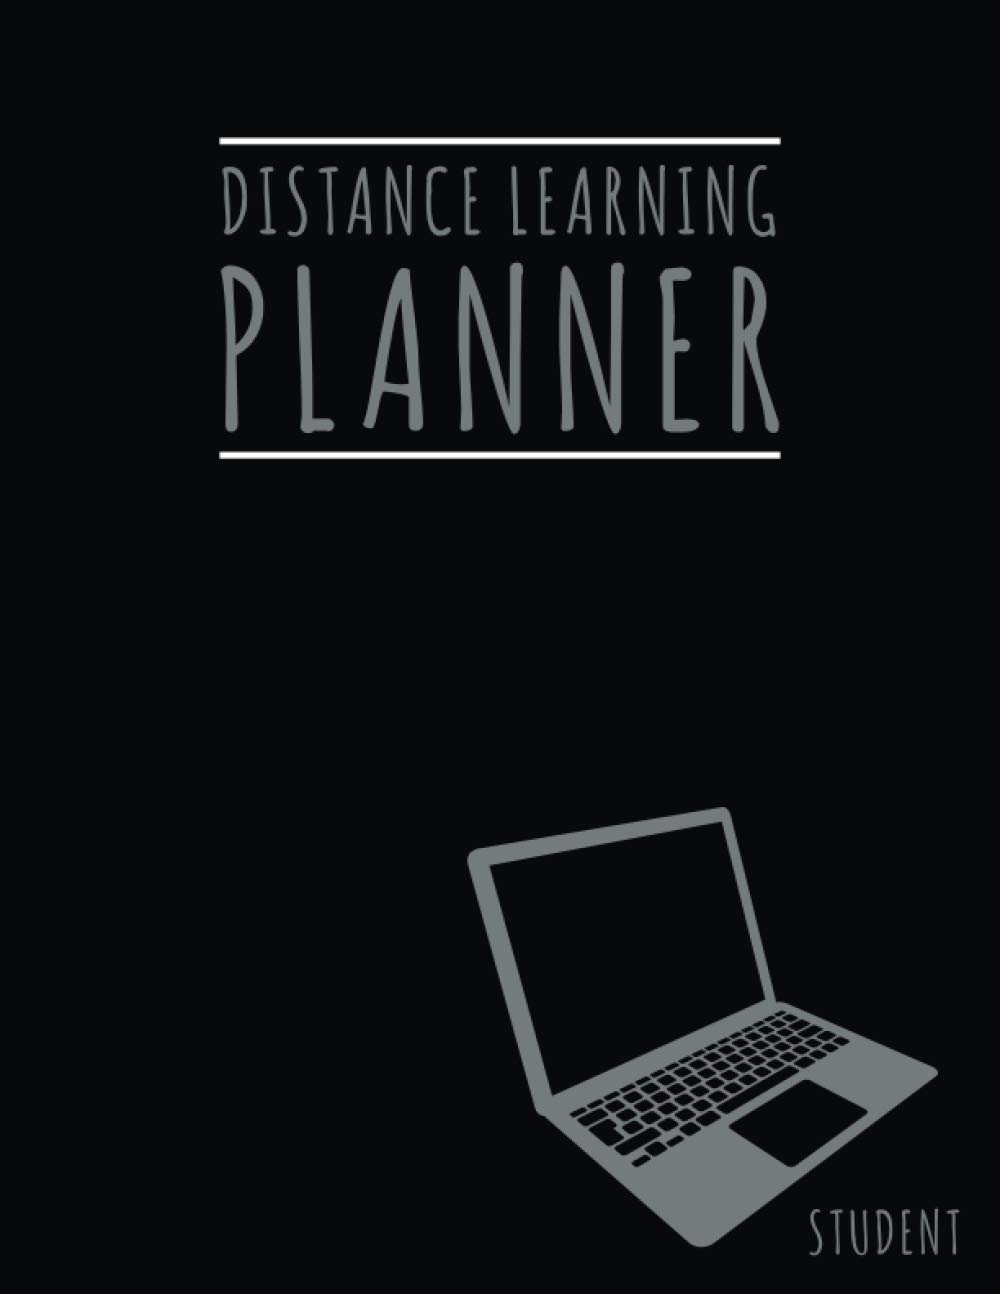 Distance Learning Planner: Undated Remote Learning Weekly Planner Organizer 6 Months for Student and Parents 8.5 x 11 Large Black 2020-2021 Edition